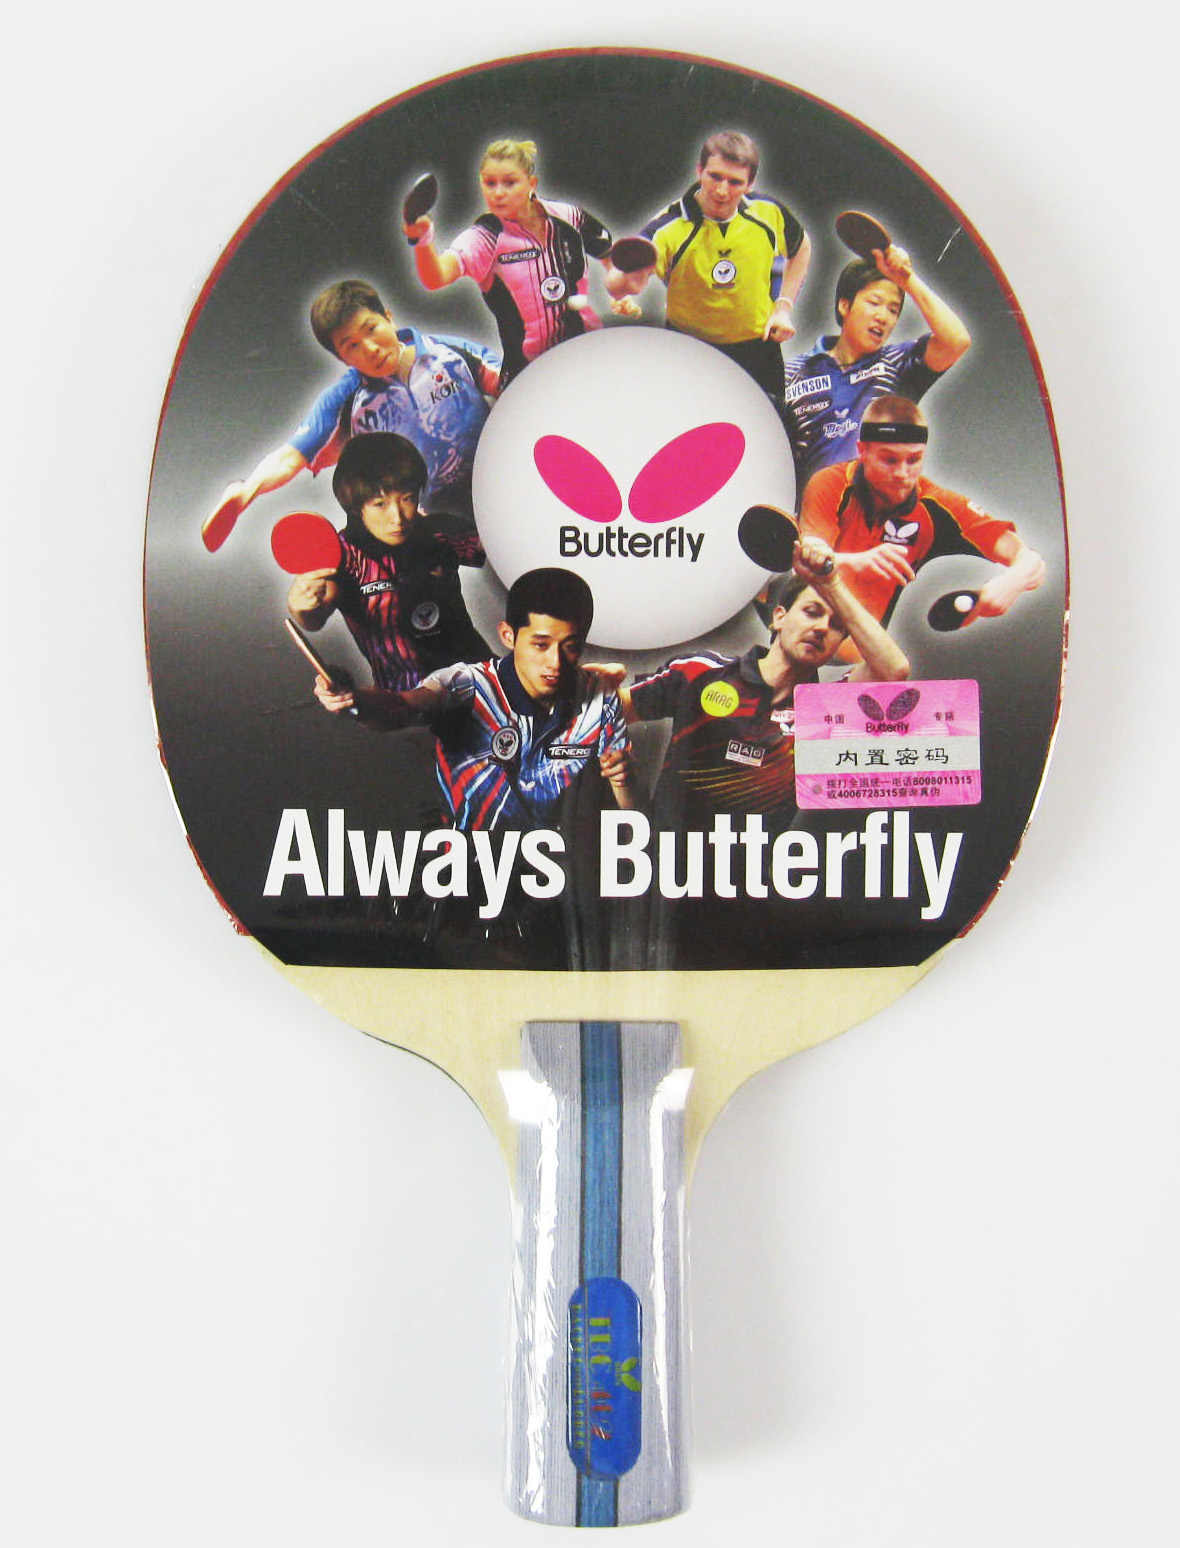 Mesa De Ping Pong Butterfly Butterfly Genuine 401 402 403 Shakehand Table Tennis Racket Ping Pong Racket Paddle Bat Blade Fl New